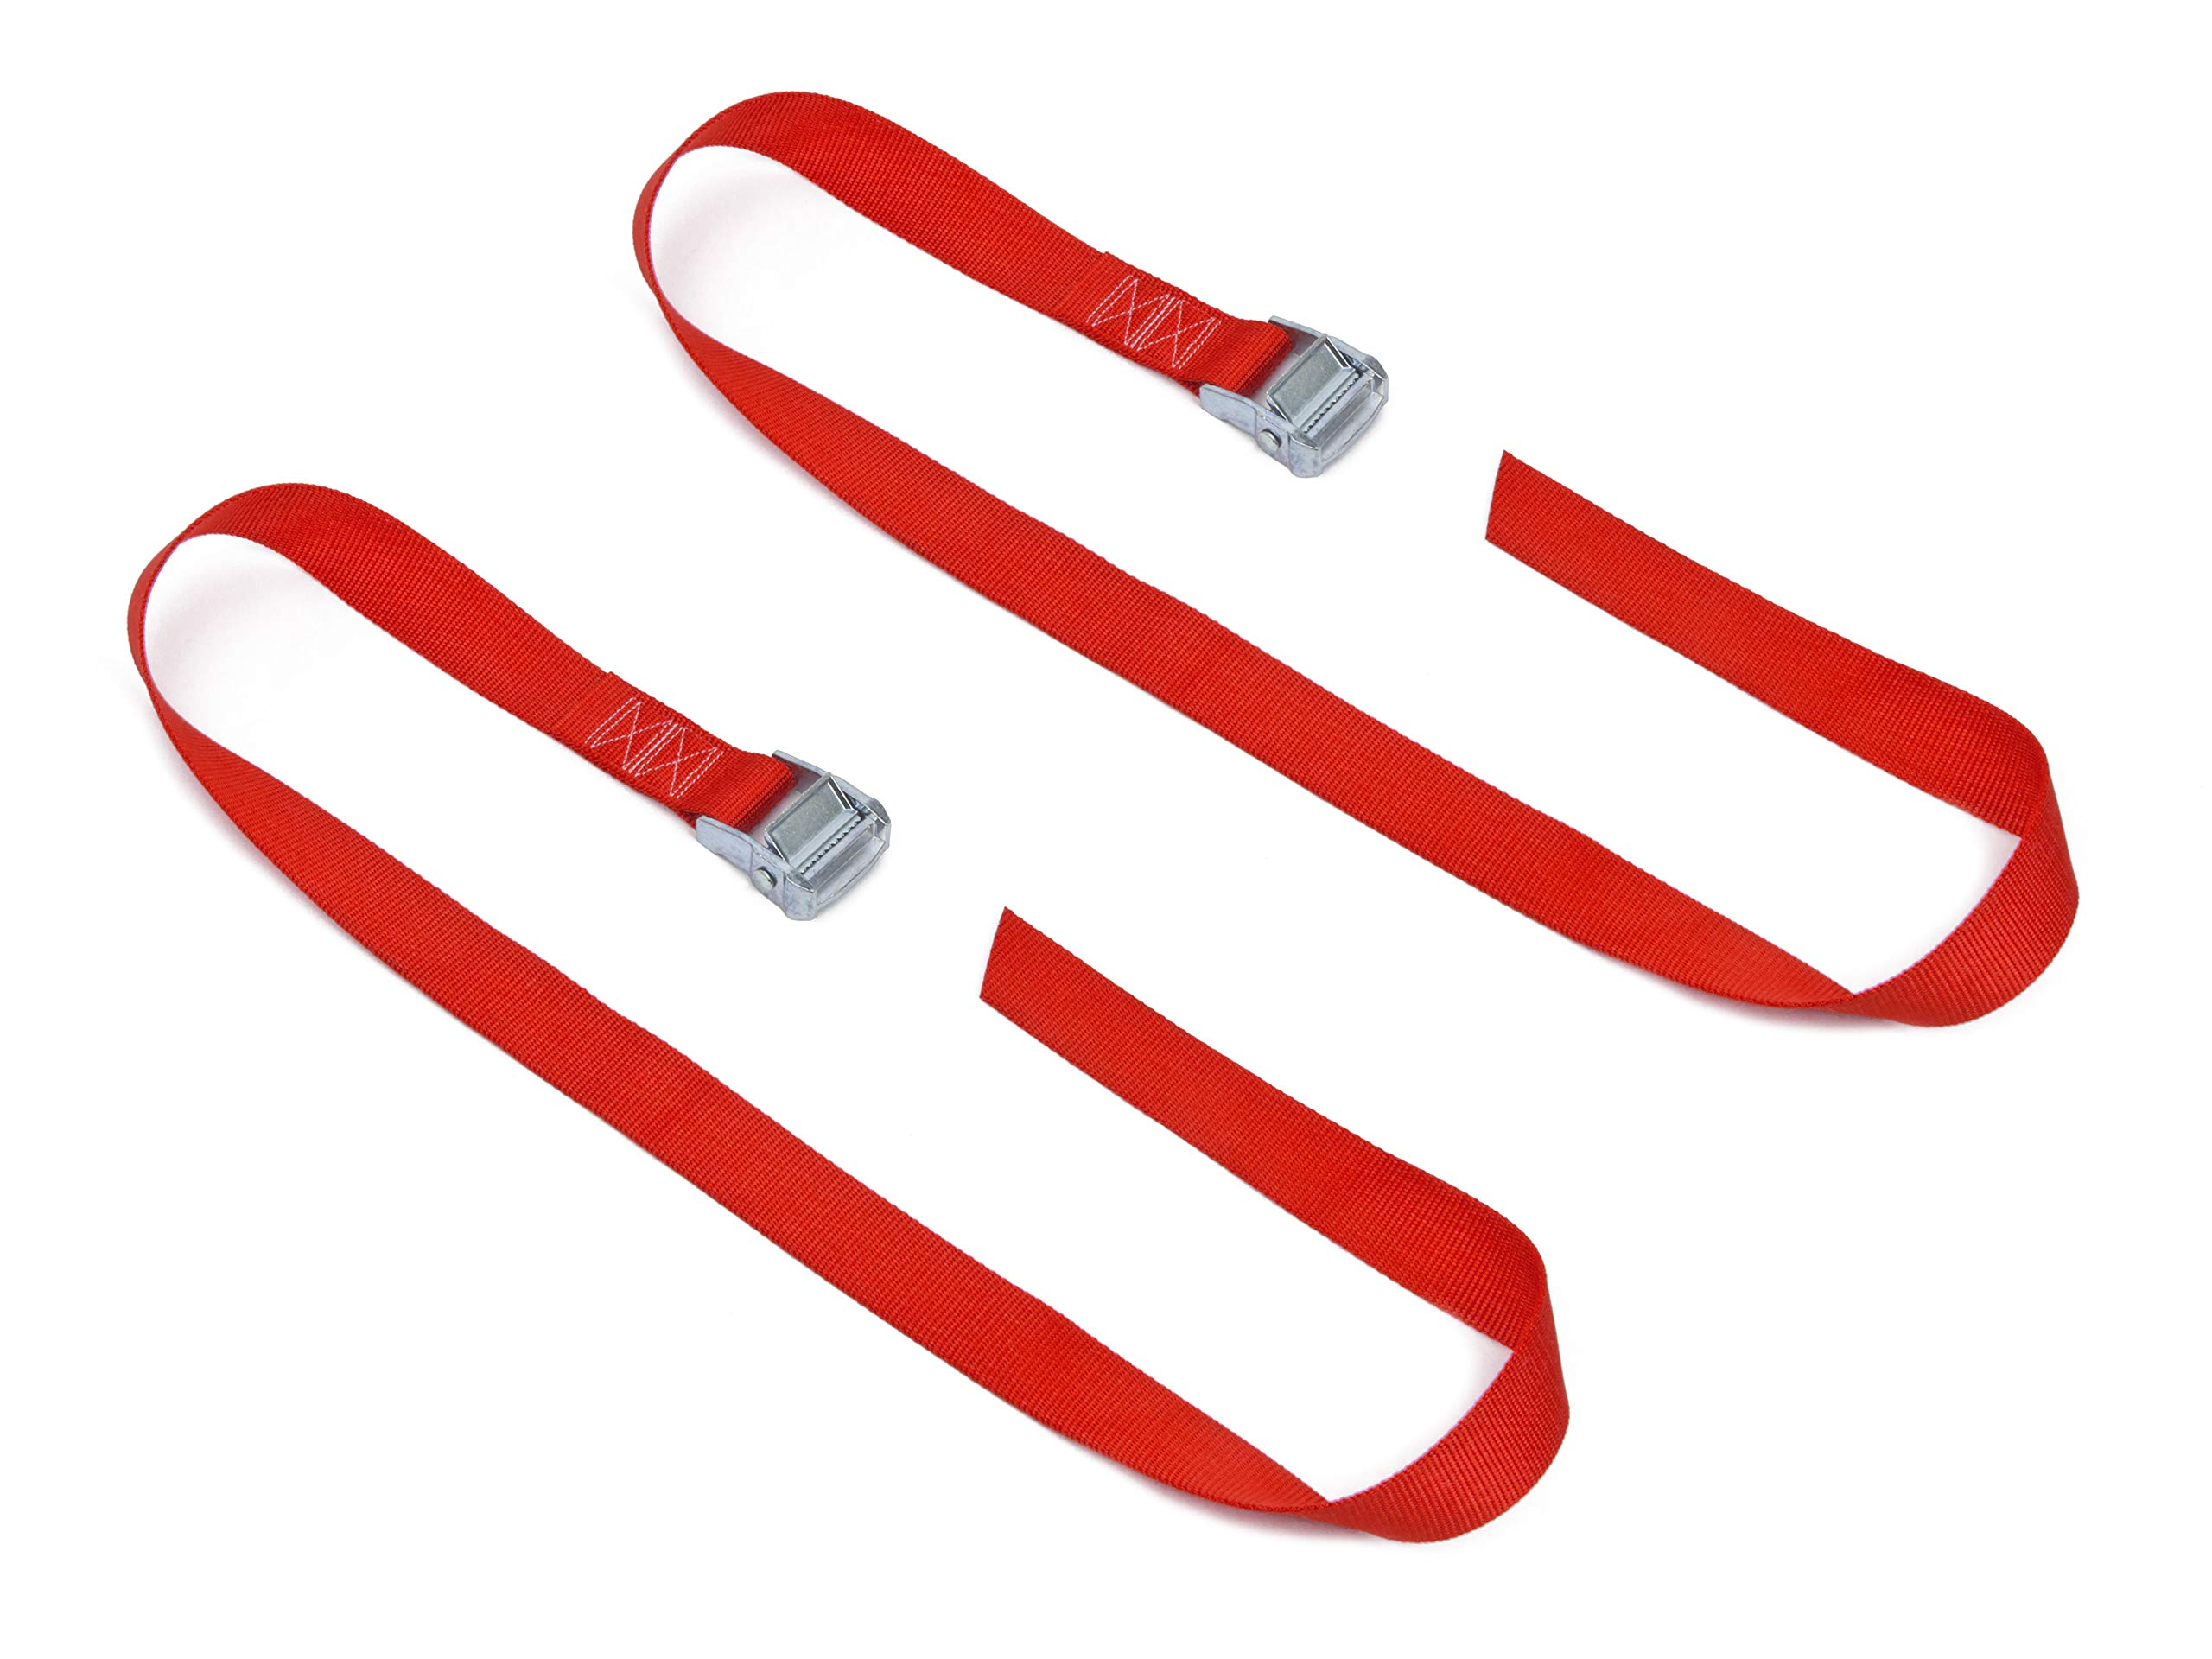 1½'' x 4ft PowerTye Made in USA Heavy-Duty Lashing Strap with Heavy-Duty Buckle, Red, 2-Pack by Powertye (Image #1)